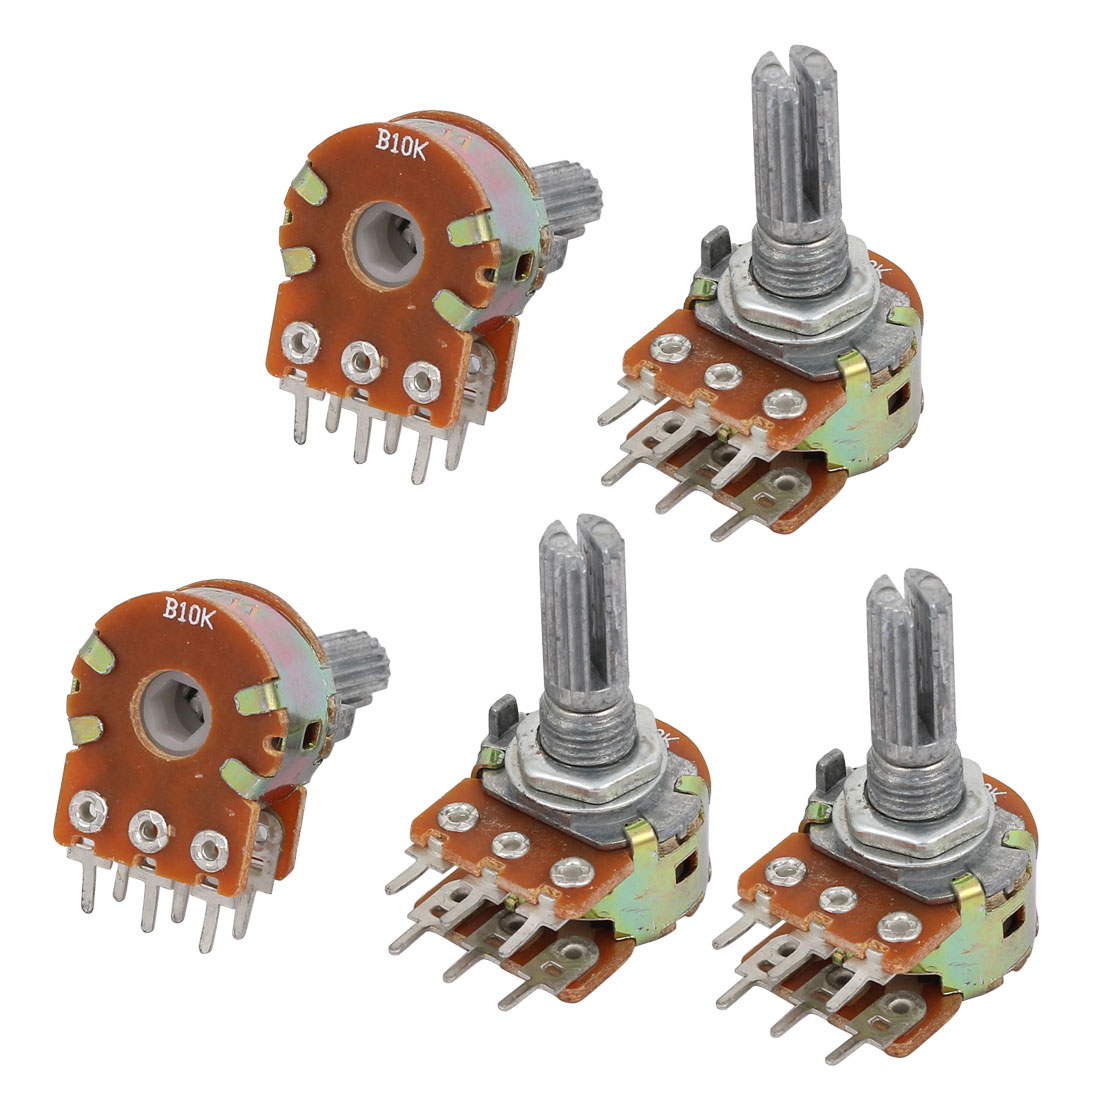 5 Pcs B10K 10K Ohm 6 Terminals Quadruple Linear Adjustable Rotary Knob Potentiometers